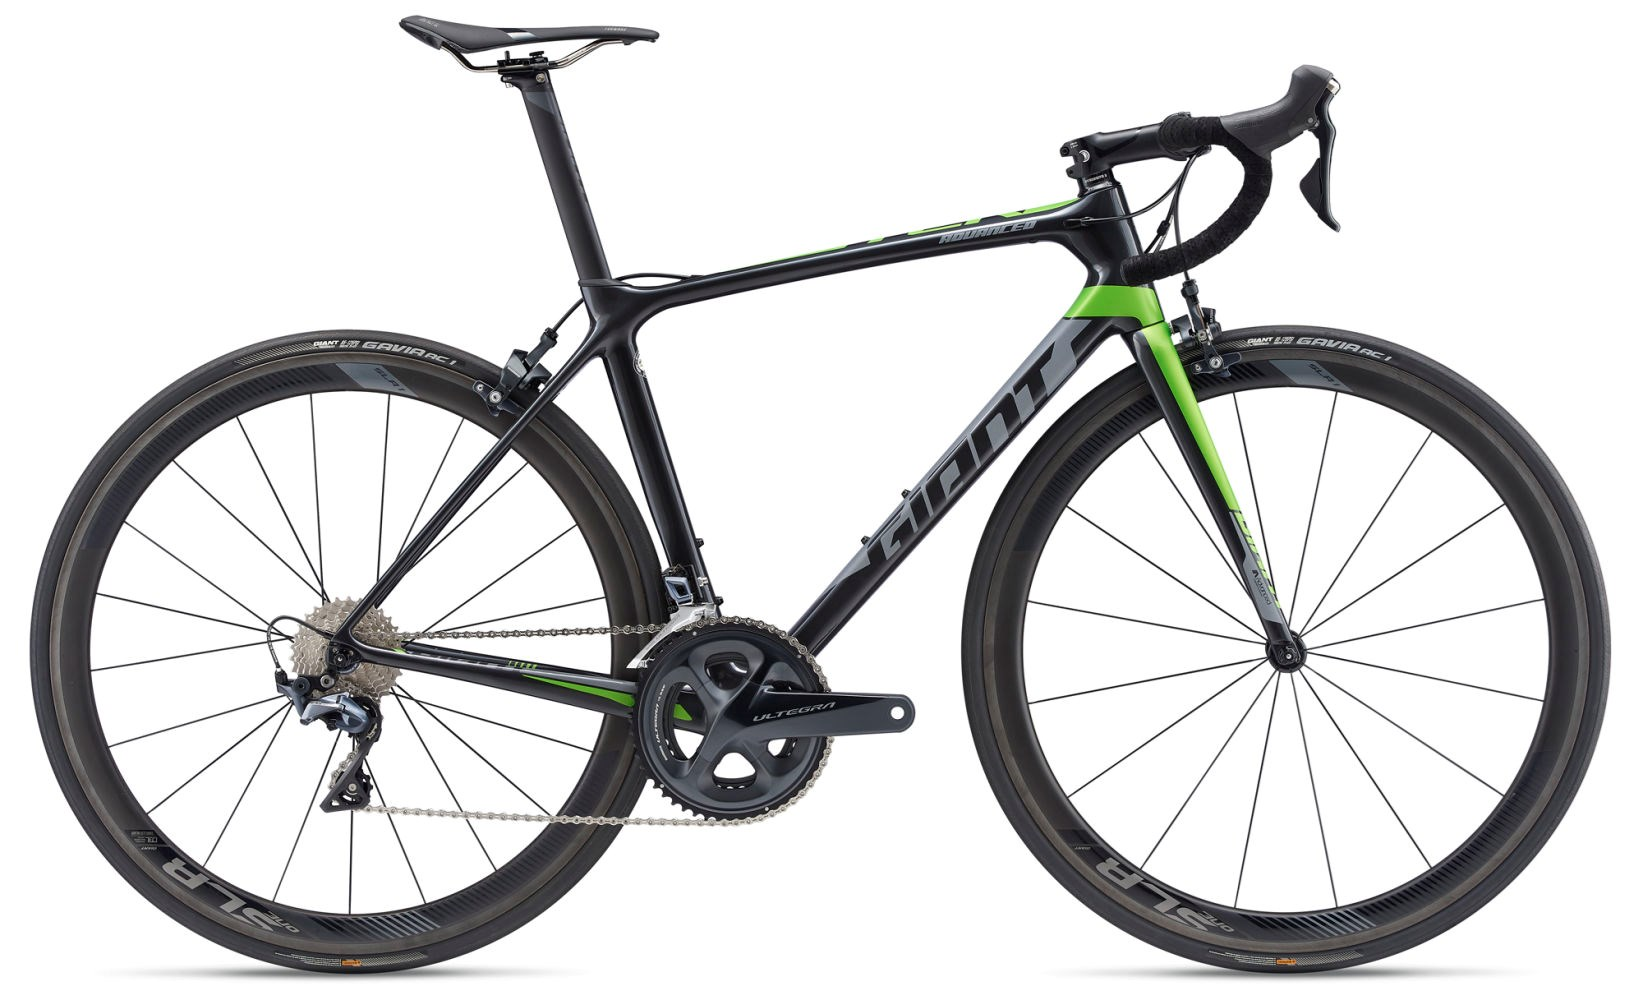 13def07fb66 Giant TCR Advanced Pro 1 2019 Road Bike Gun Metal / Metallic Gree. 0 (Be  the first to add a review!)